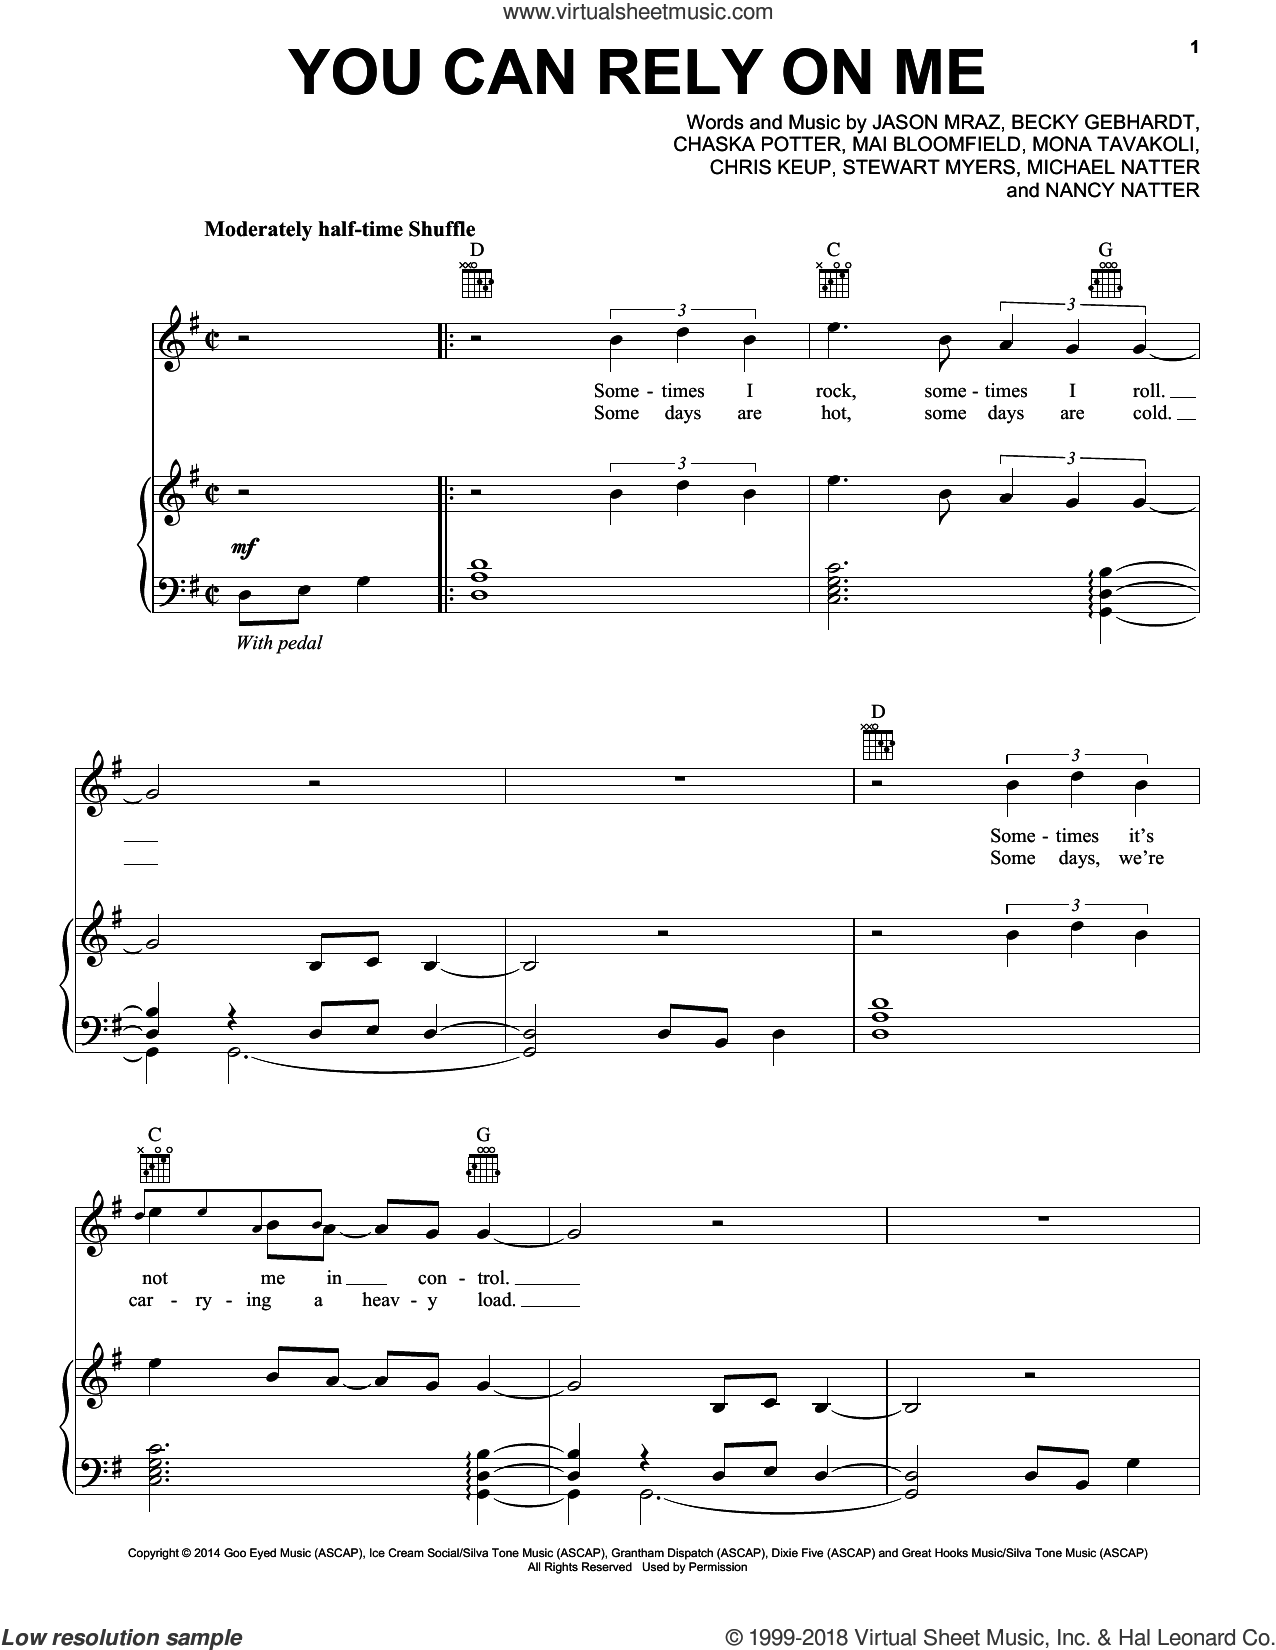 You Can Rely On Me sheet music for voice, piano or guitar by Jason Mraz, Becky Gebhardt, Chaska Potter, Chris Keup, Mai Bloomfield, Michael Natter, Mona Tavakoli, Nancy Natter and Stewart Myers, intermediate skill level